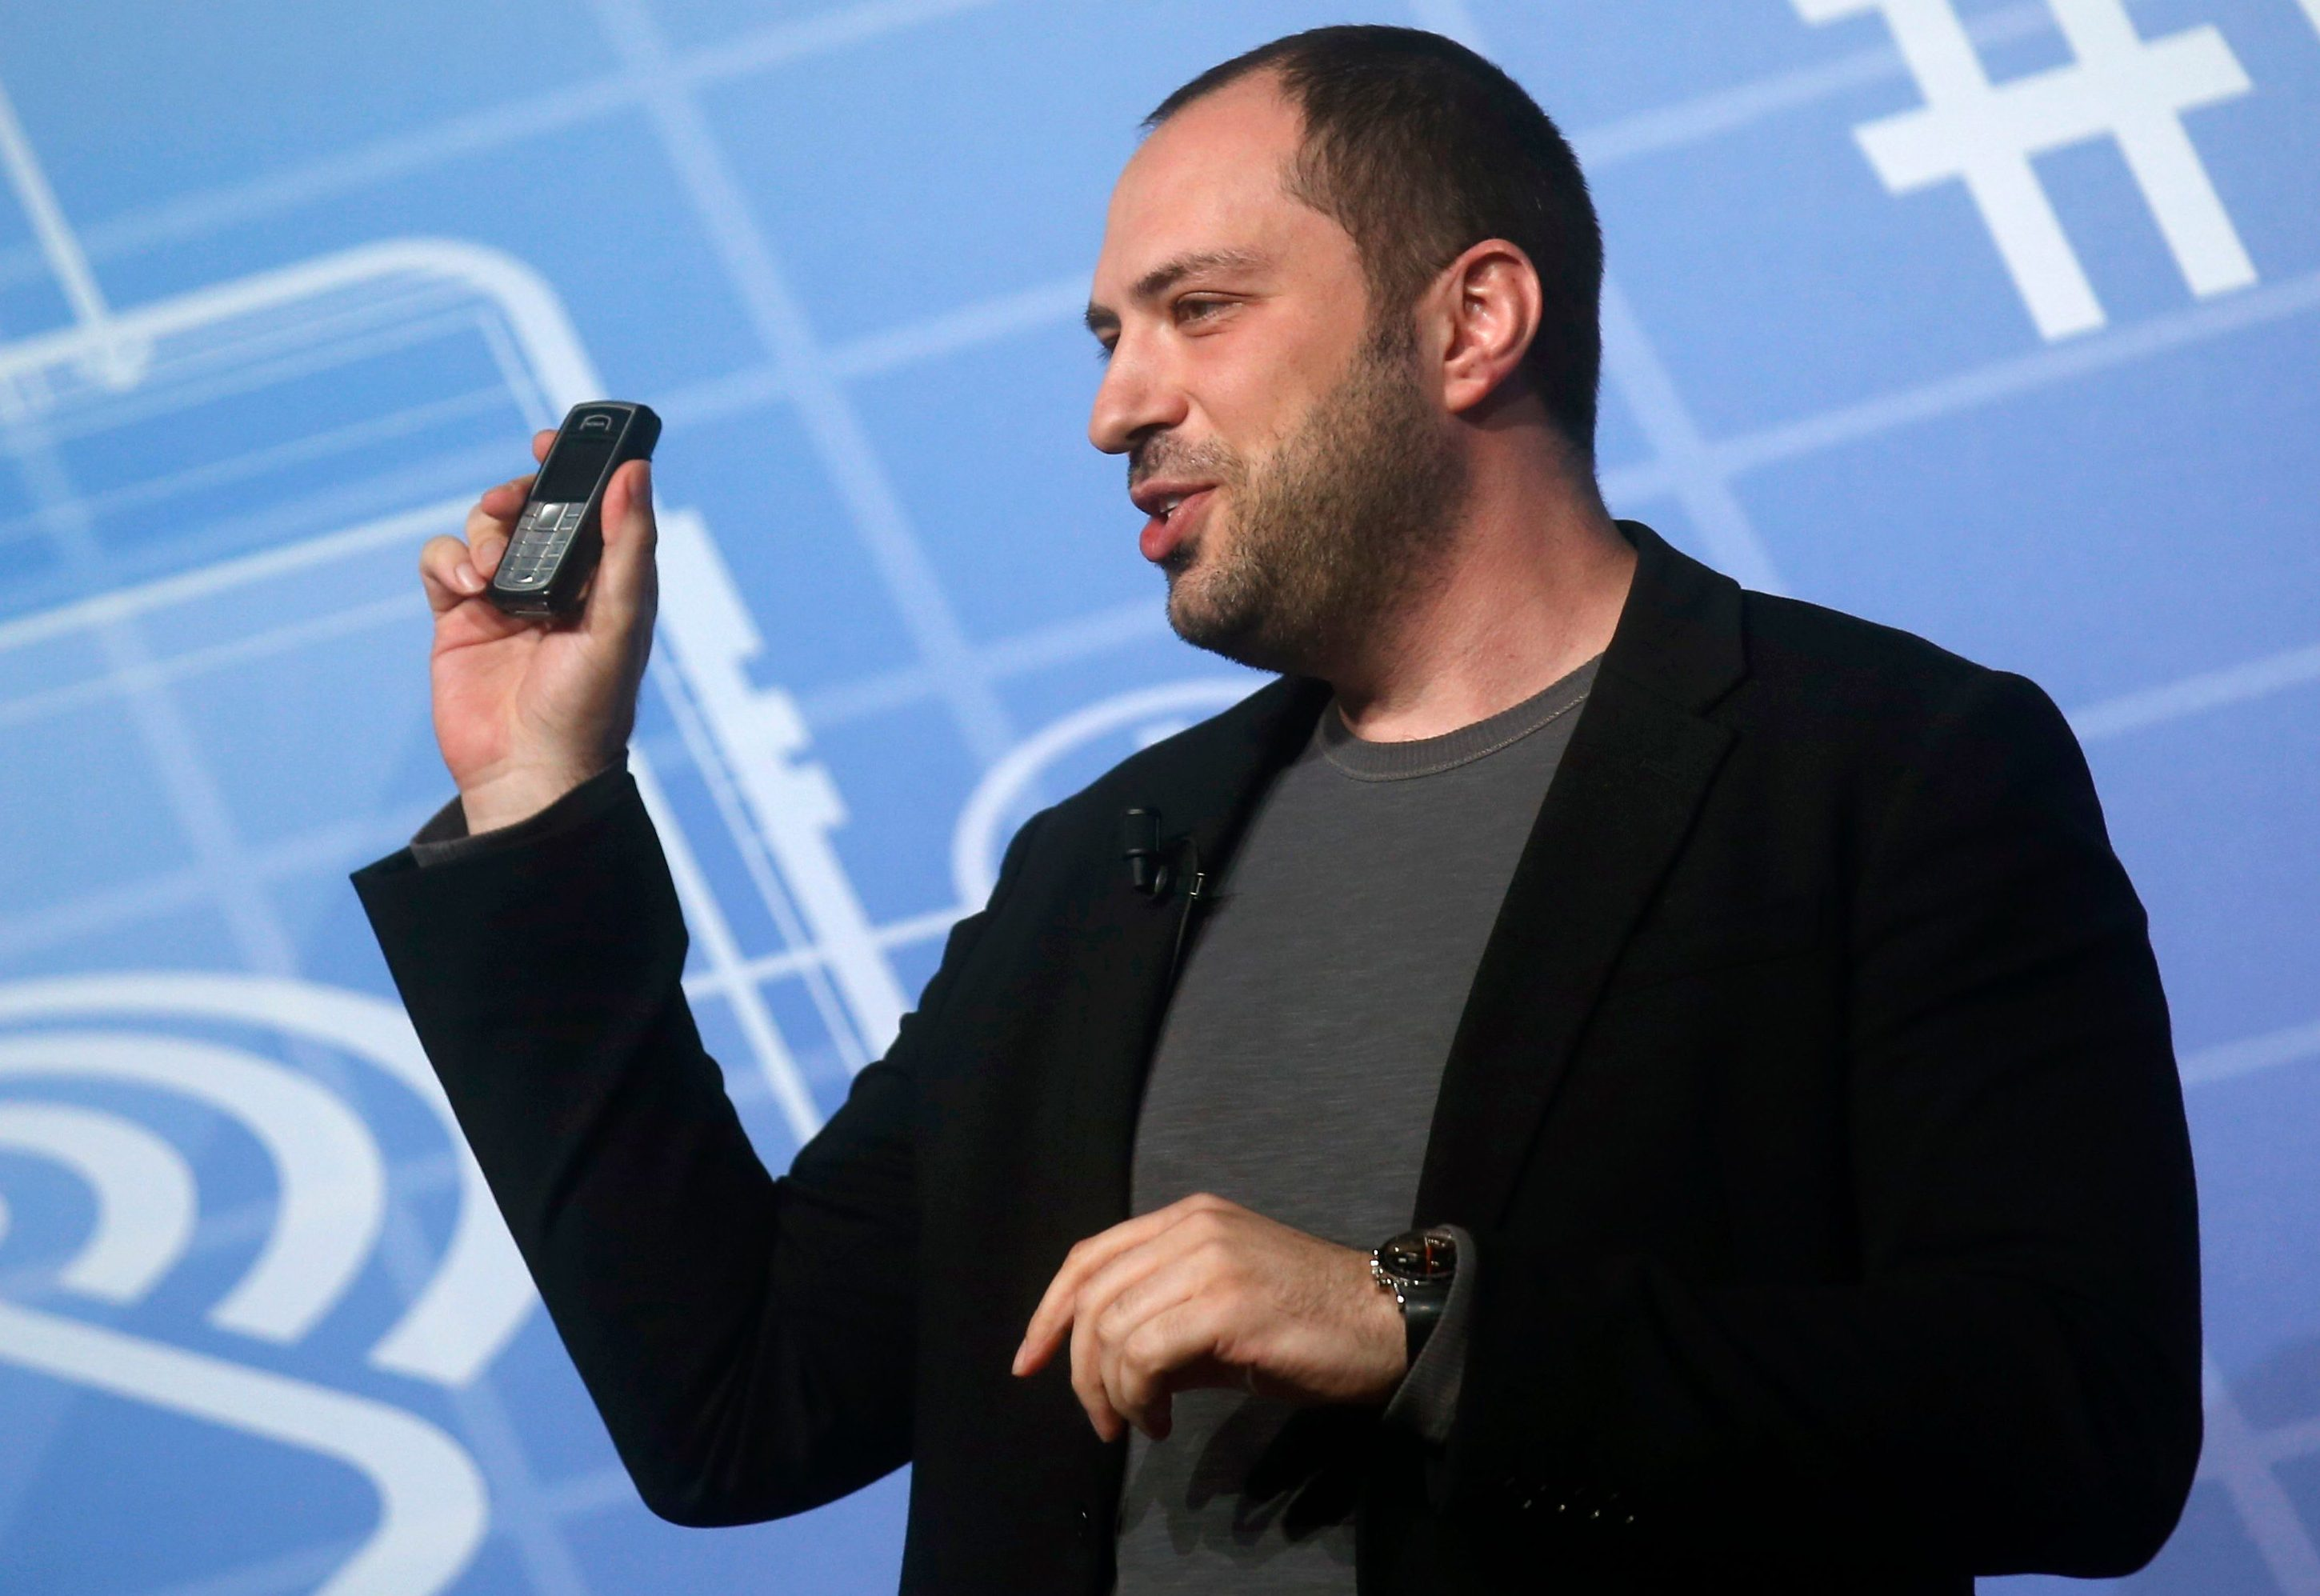 WhatsApp Chief Executive Officer and co-founder Jan Koum holds up a mobile phone as he delivers a keynote speech at the Mobile World Congress  in Barcelona February 24, 2014. The world's biggest messaging service WhatsApp will add voice calls to its product in the second quarter of this year, Koum said, days after its blockbuster $19 billion acquisition by Facebook.